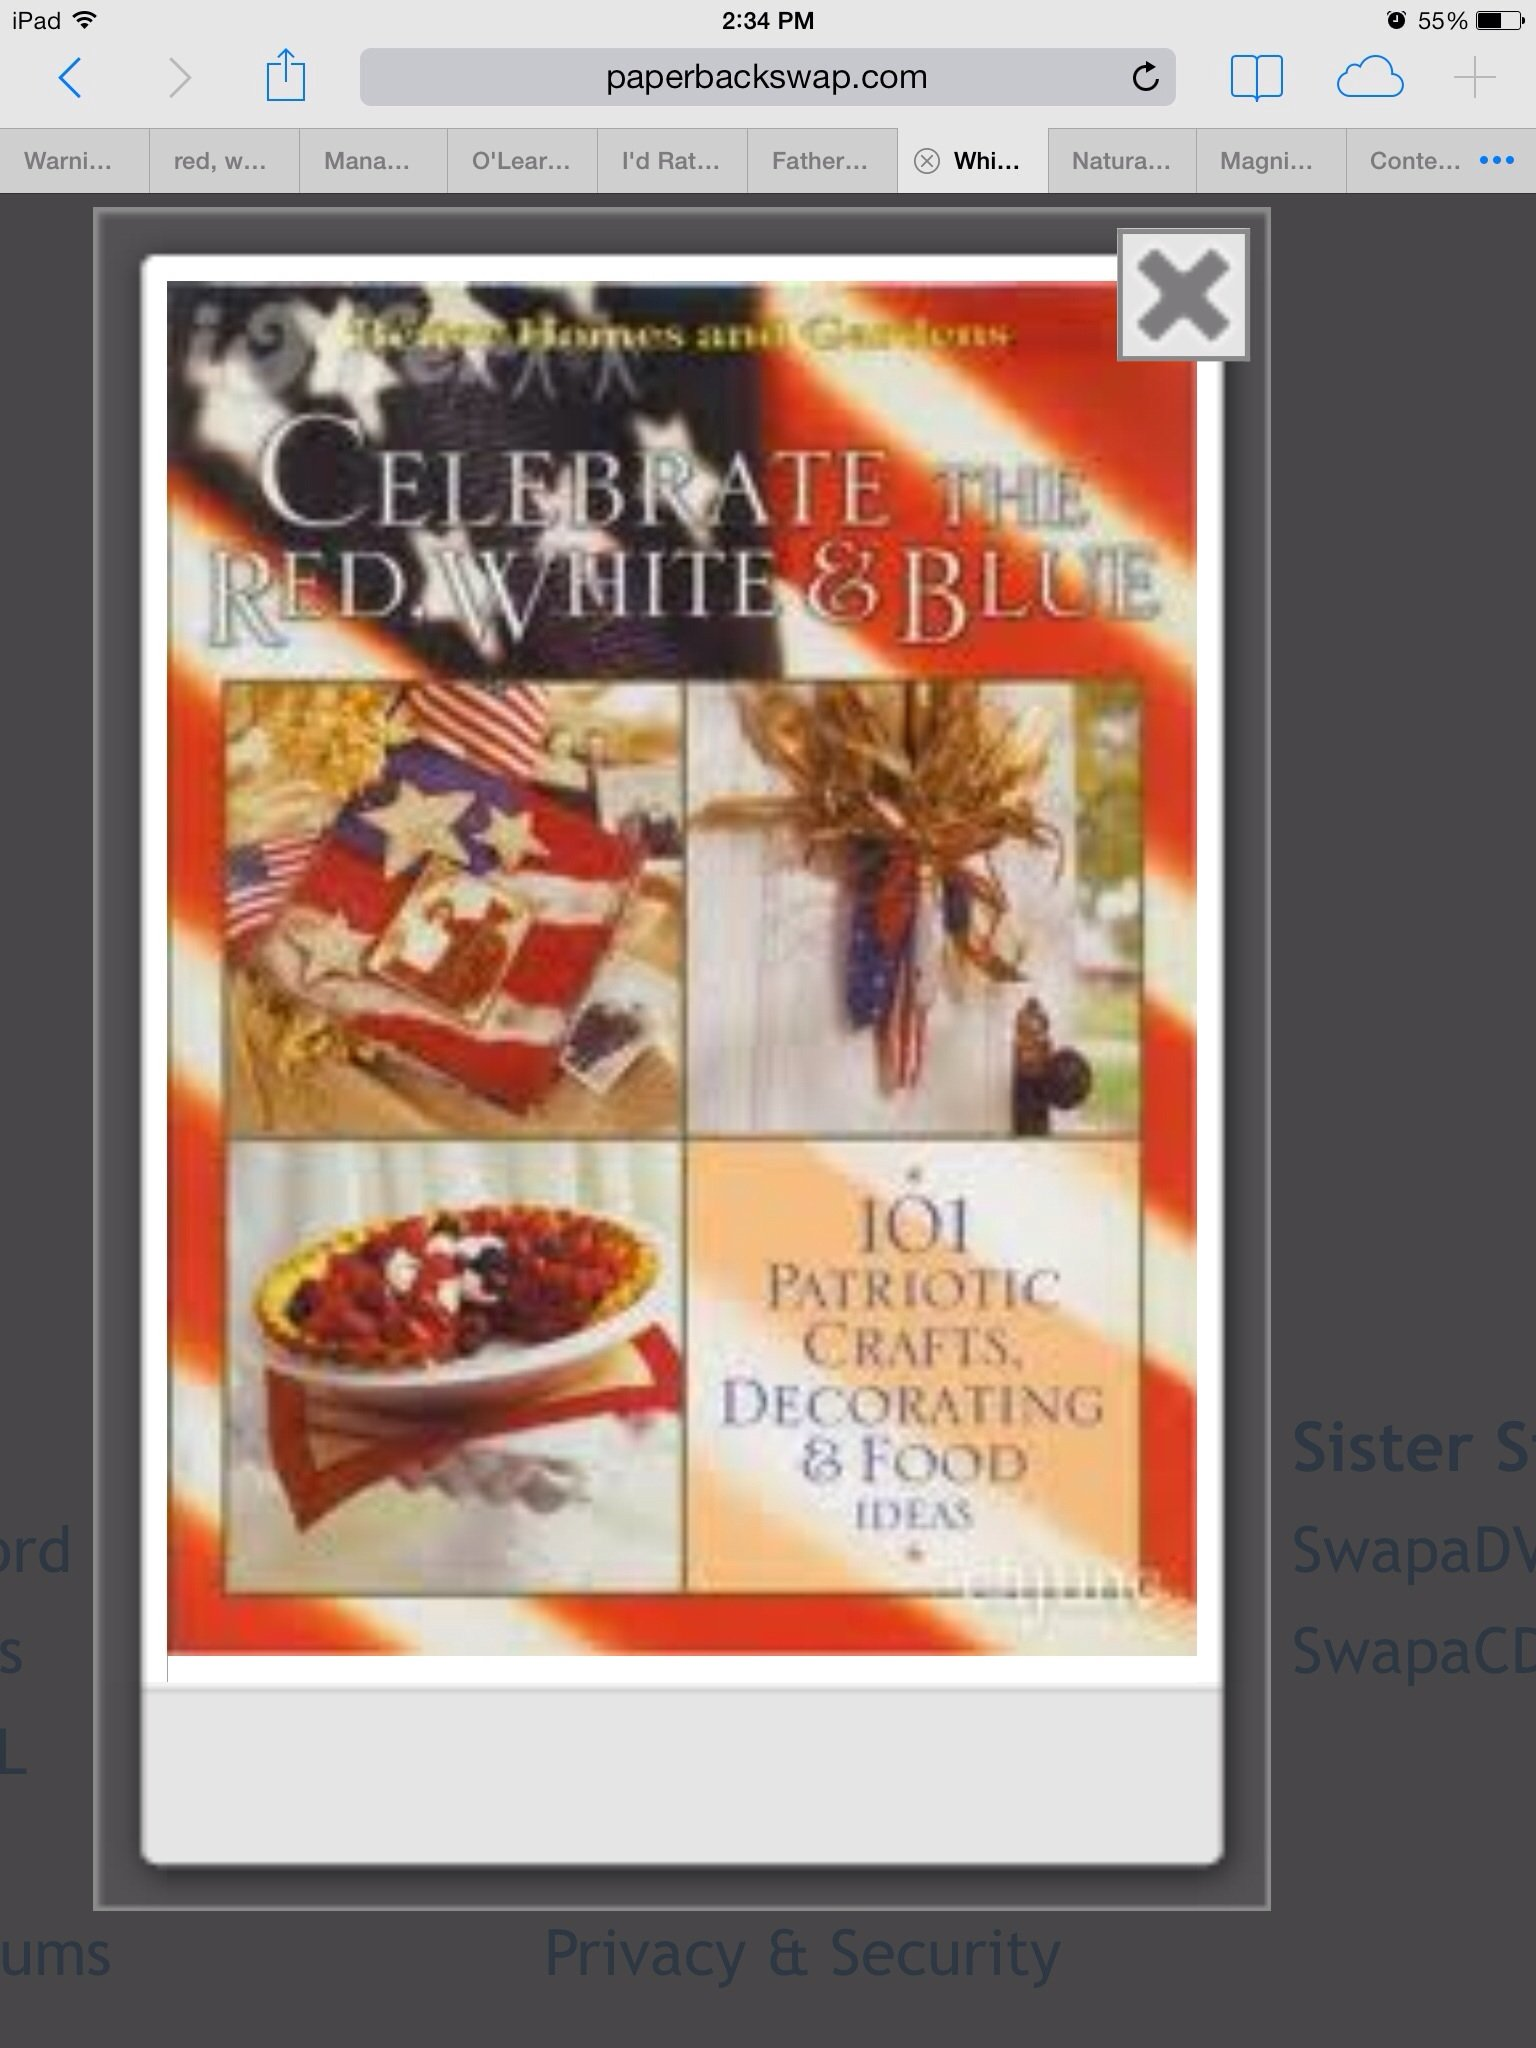 Celebrate the red, white & blue: 101 patriotic crafts, food & decorating ideas ebook